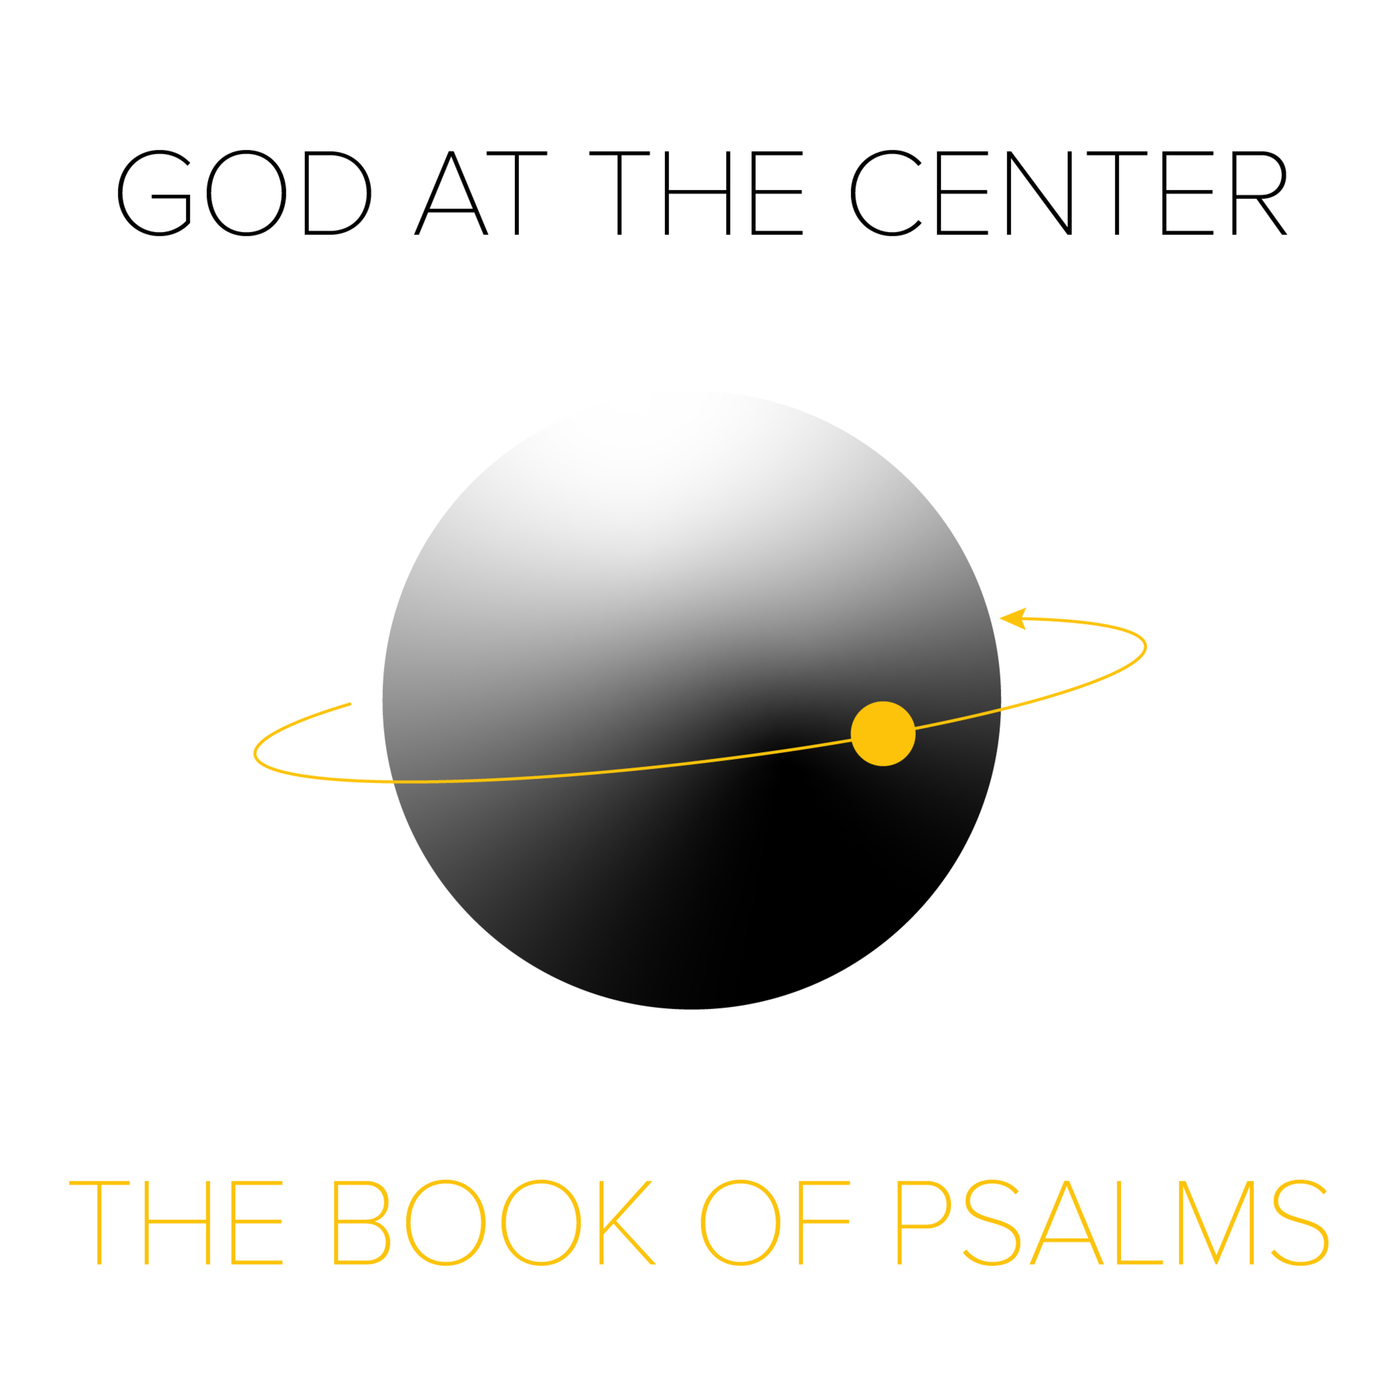 Ether Podcast: God at the Center - The Book of Psalms